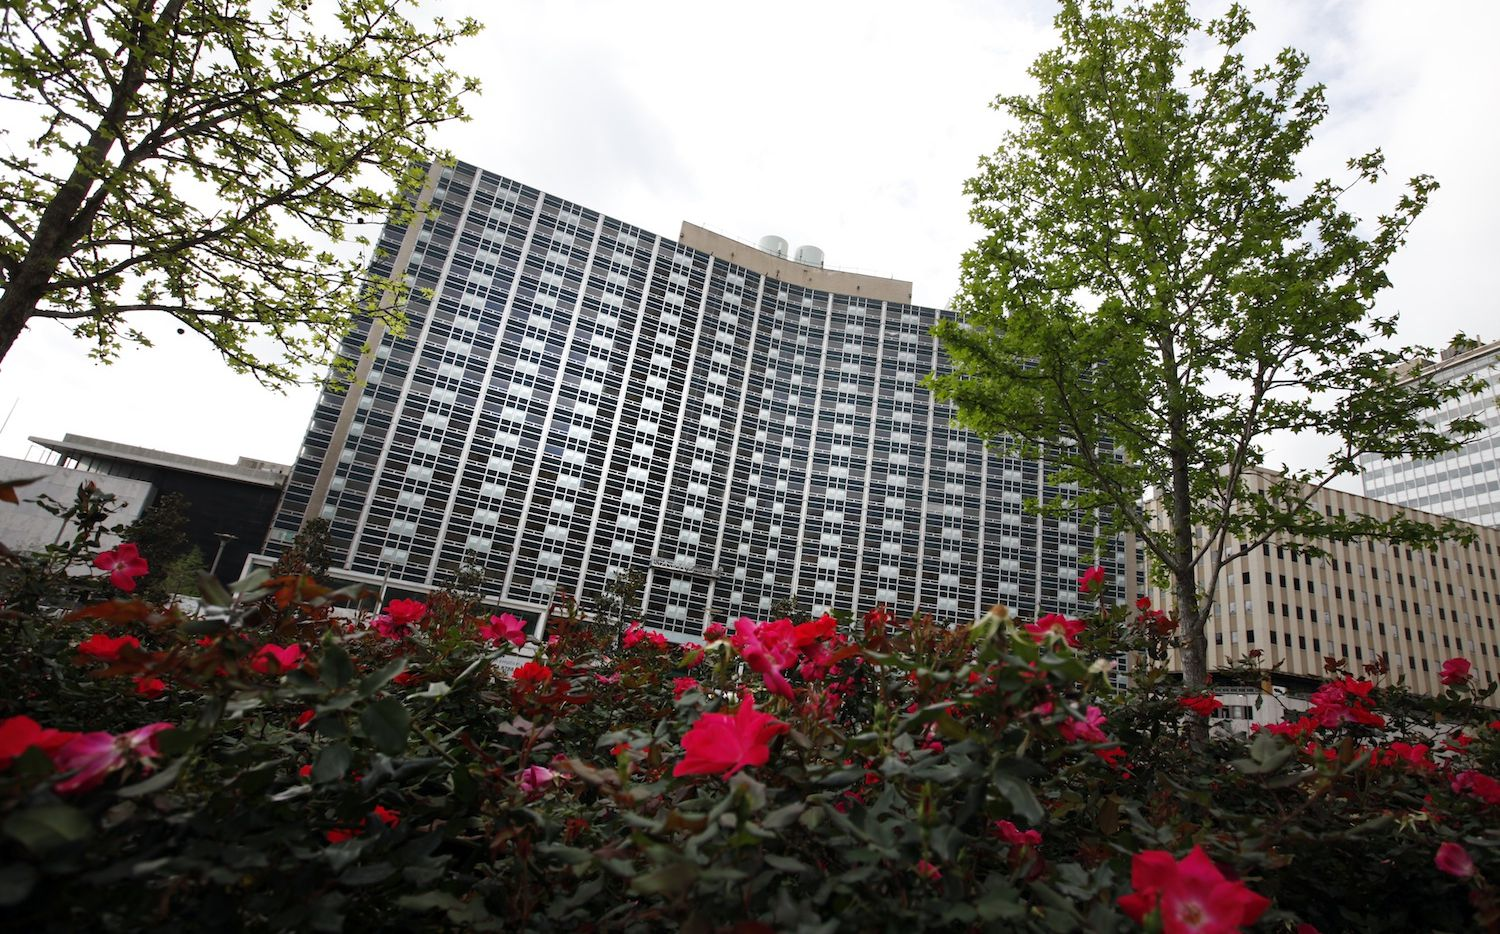 The National Trust for Historic Preservation is honoring the 61-year-old Statler Hotel in downtown Dallas.